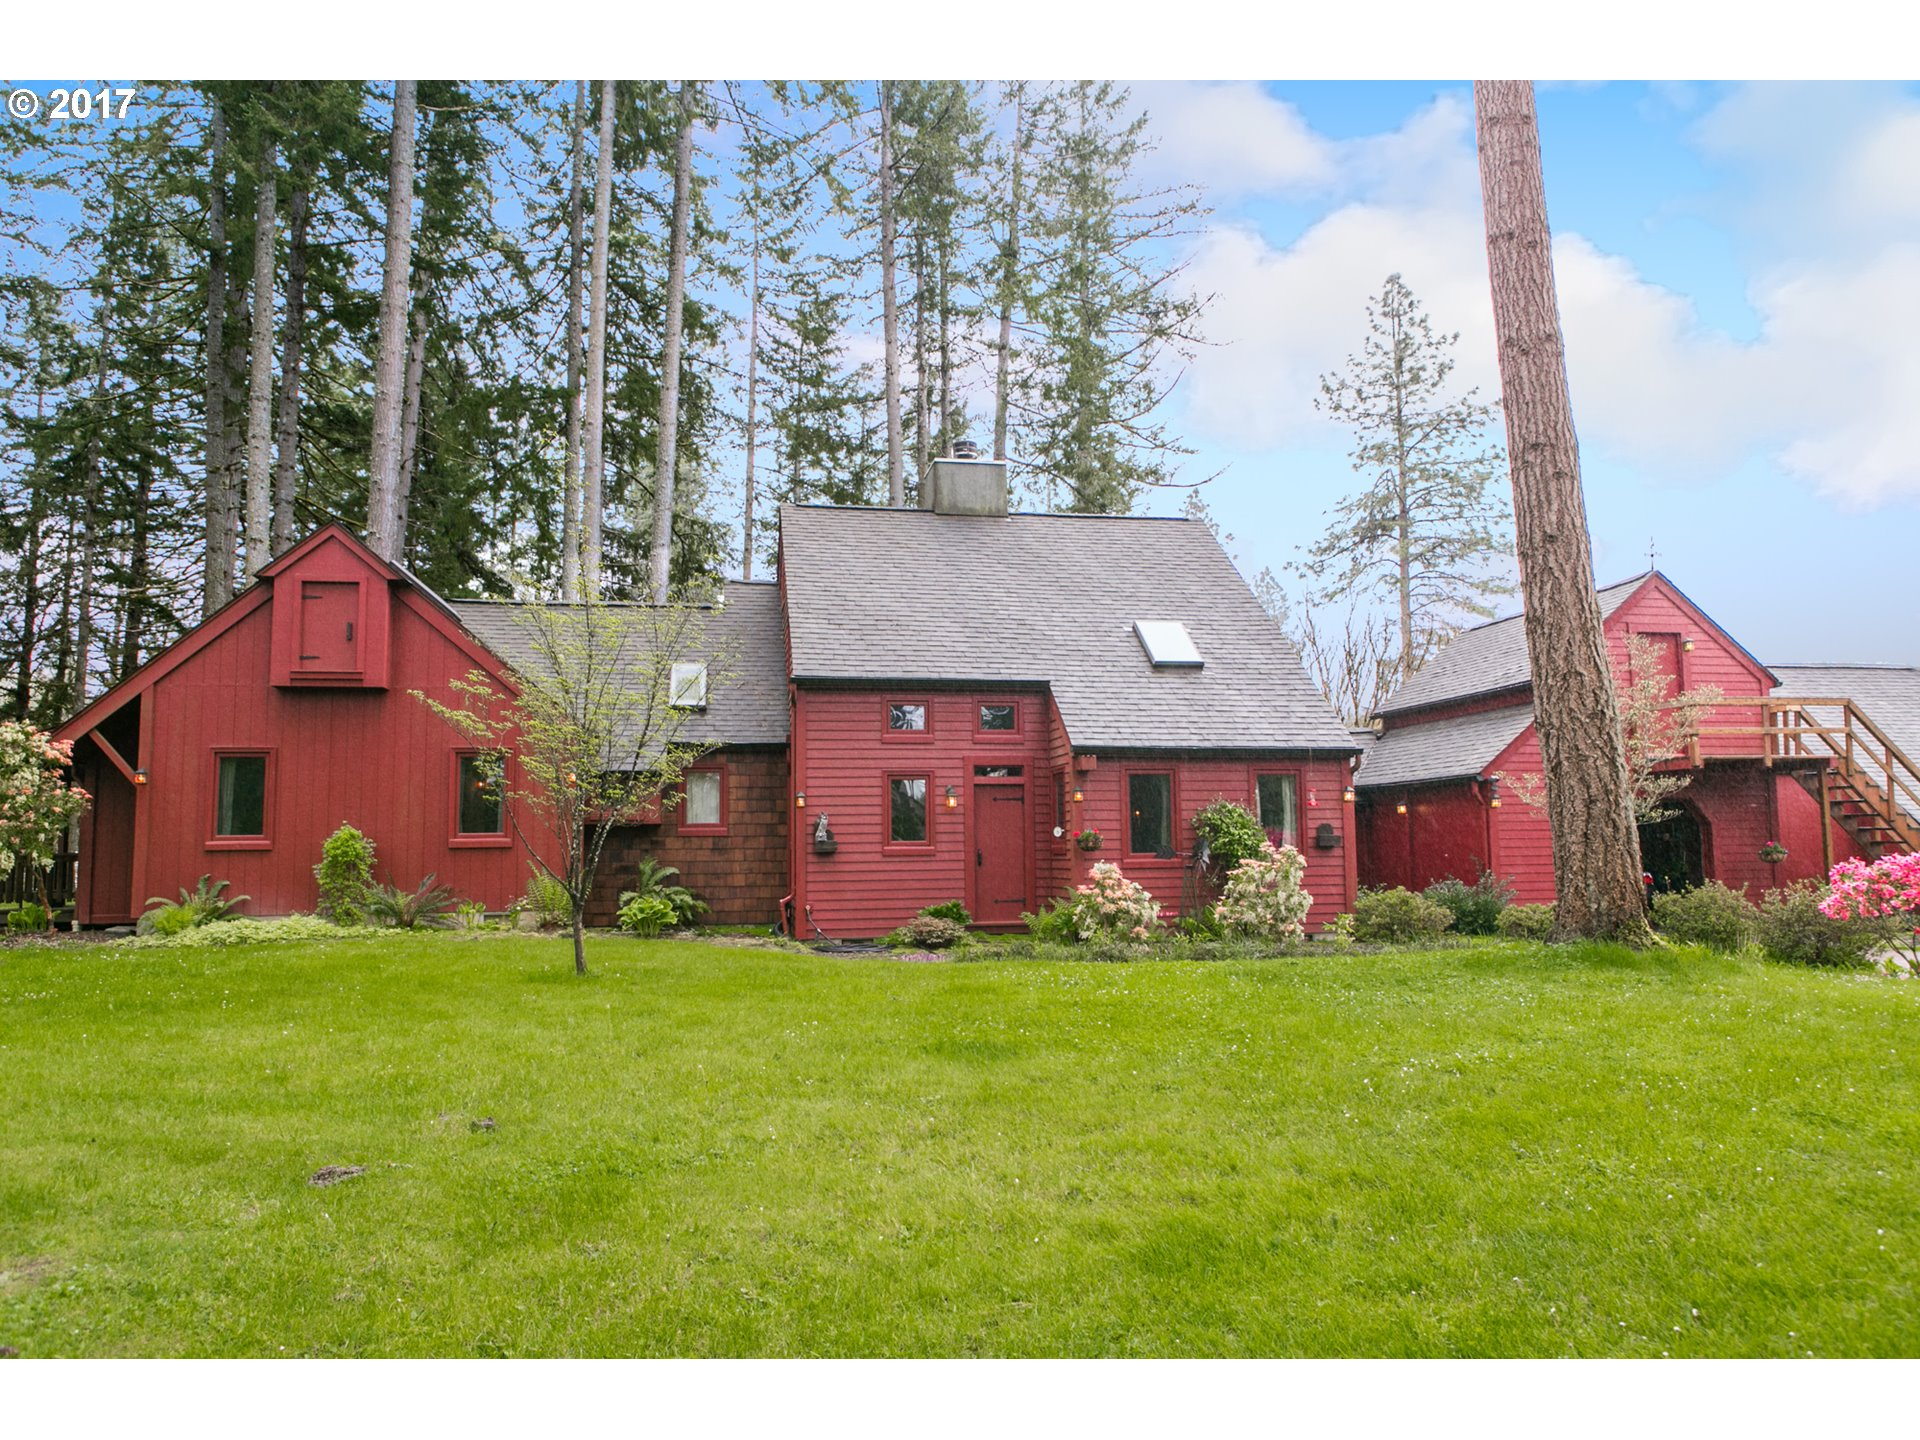 26004 ENGLAND LOOP, Veneta, OR 97487